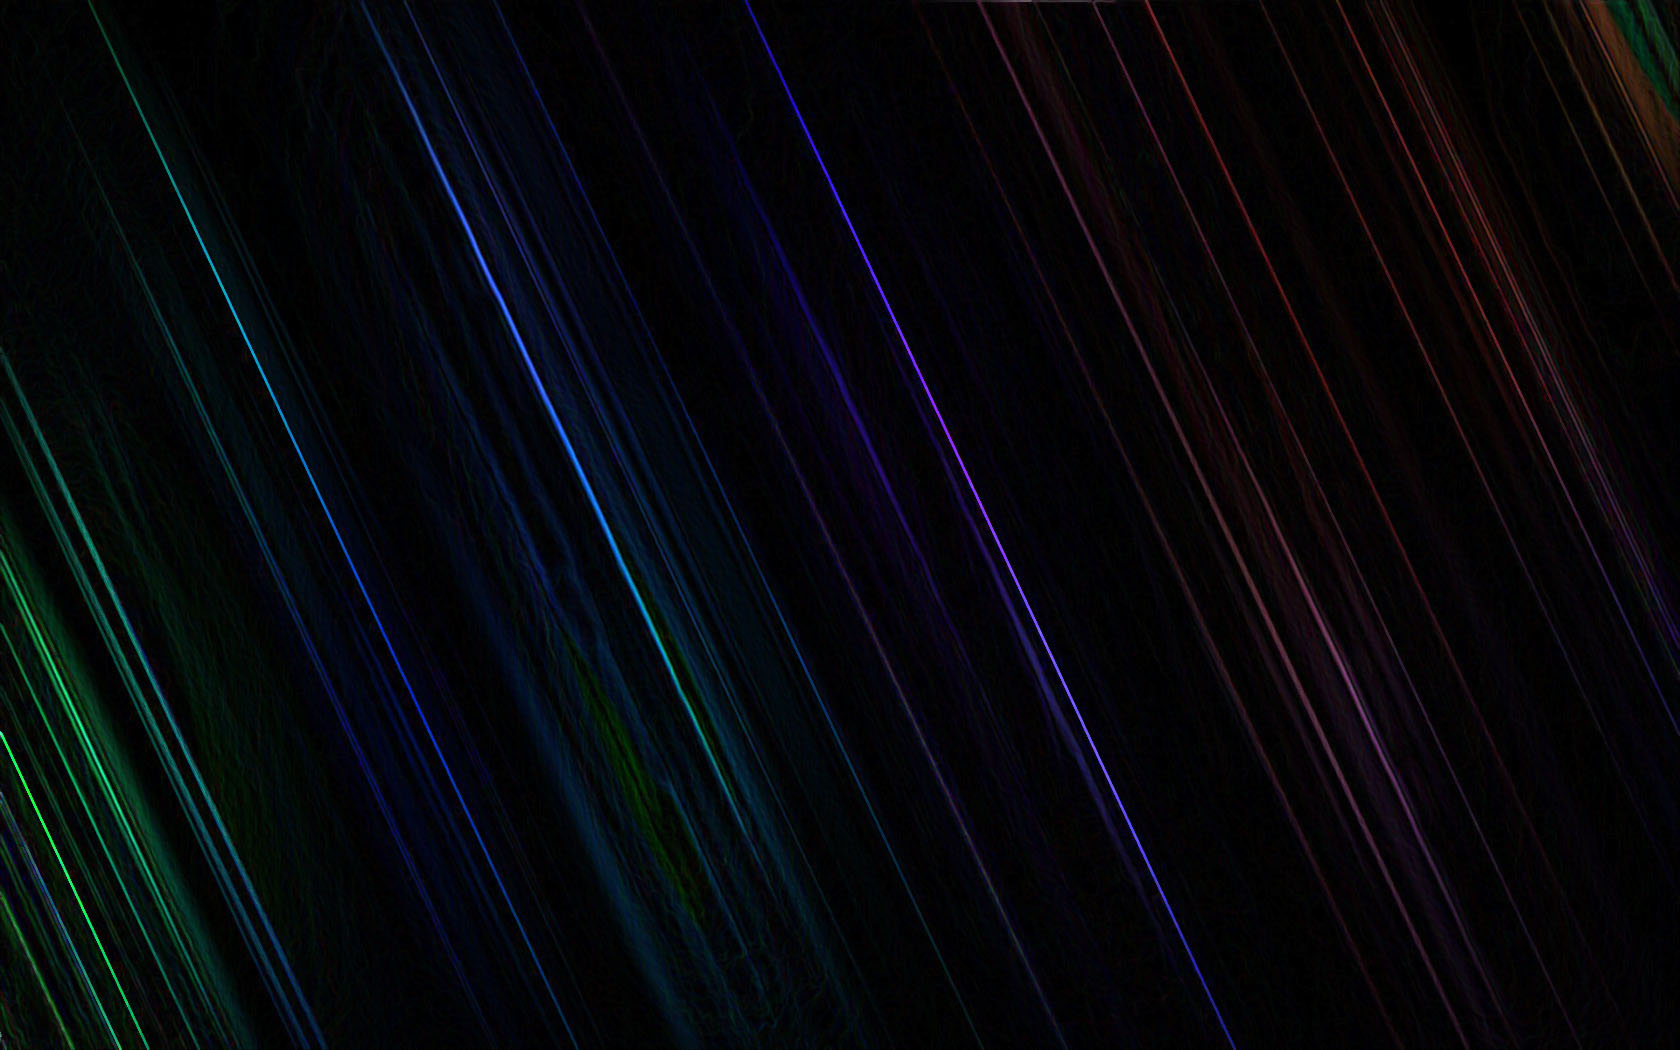 Cool Iphone X Wallpapers 2018 Glowing Striations Wallpapers Glowing Striations Stock